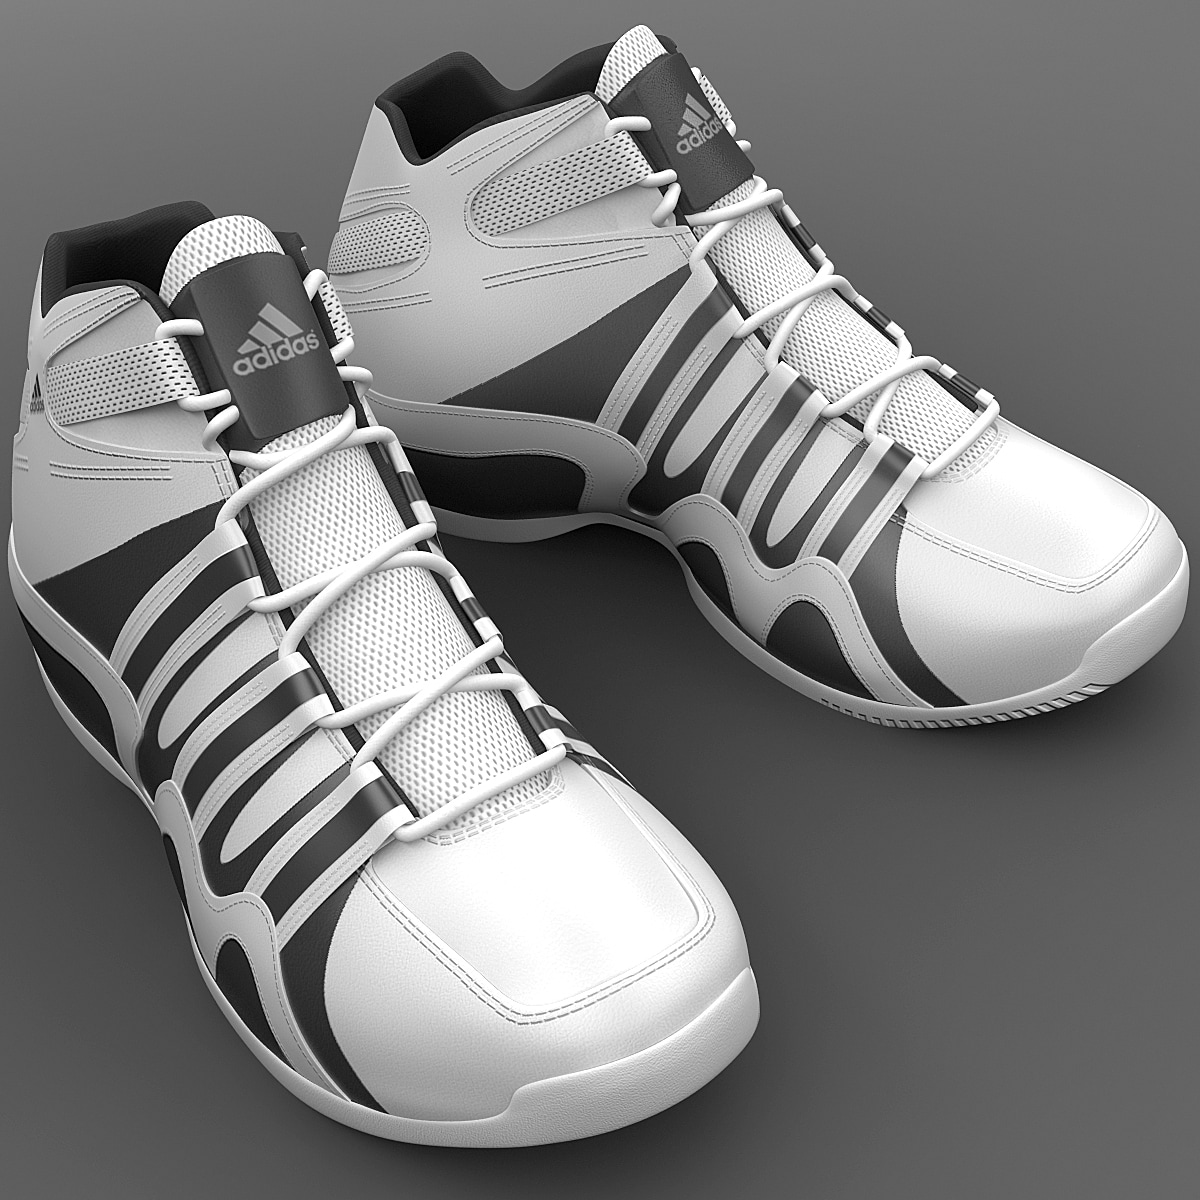 Basketball_Shoes_Adidas_Crazy_Feather_01.jpg